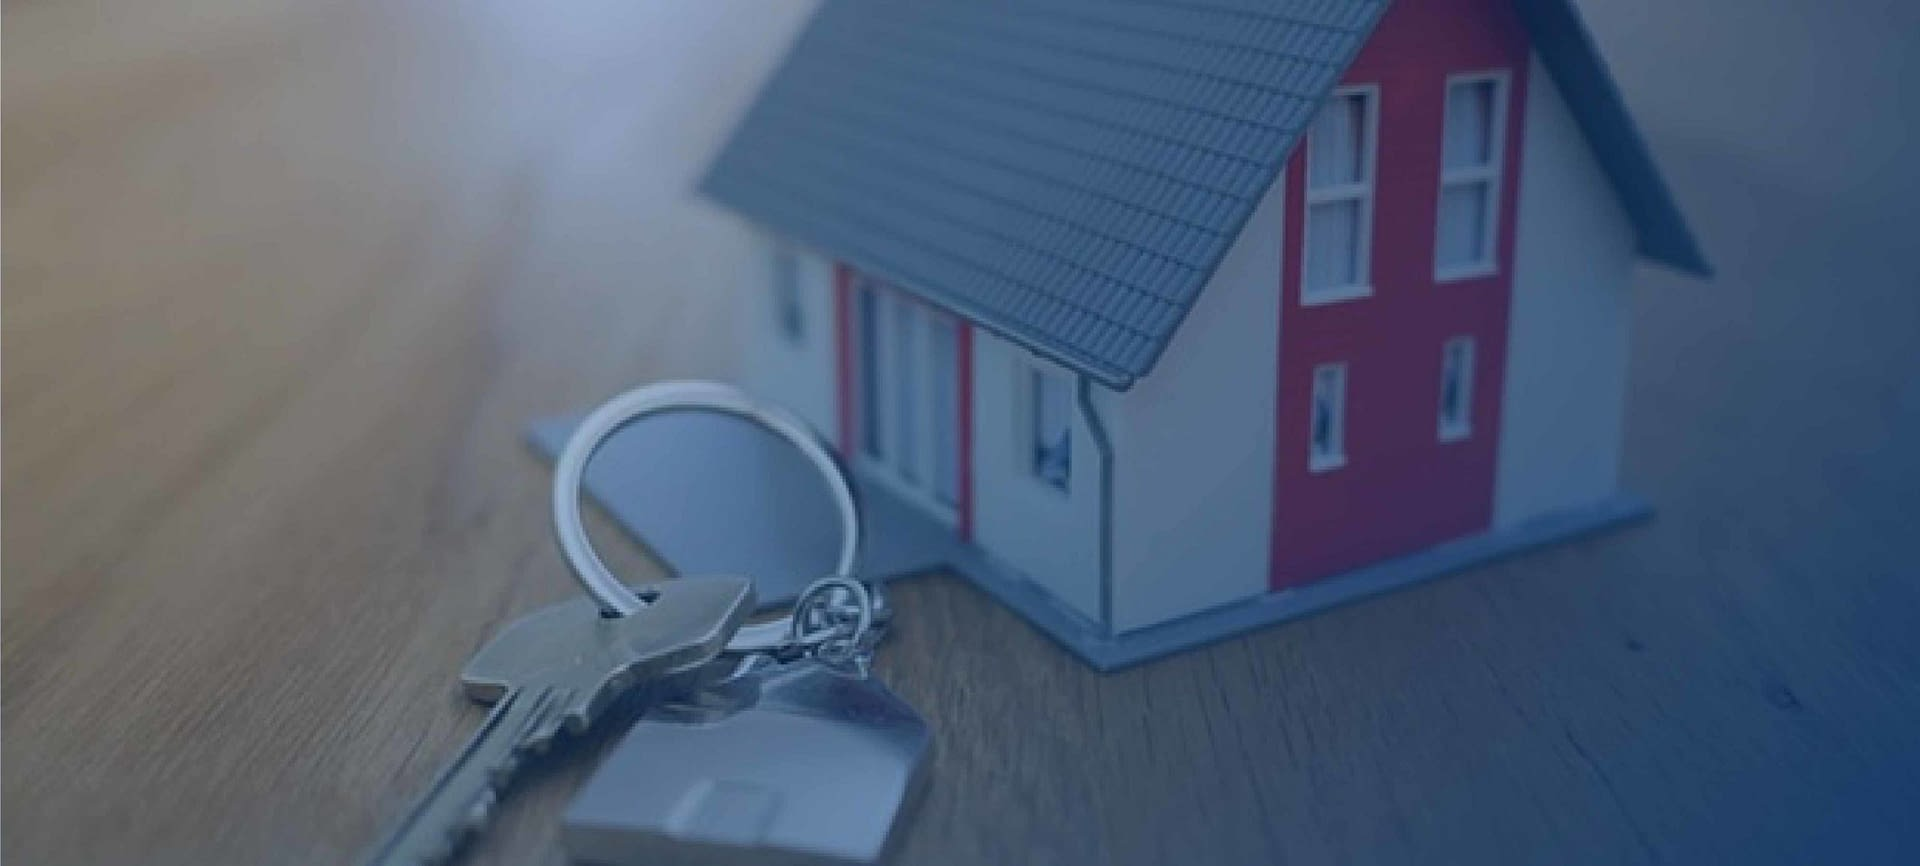 WHAT IS MORTGAGE UNDERWRITING?